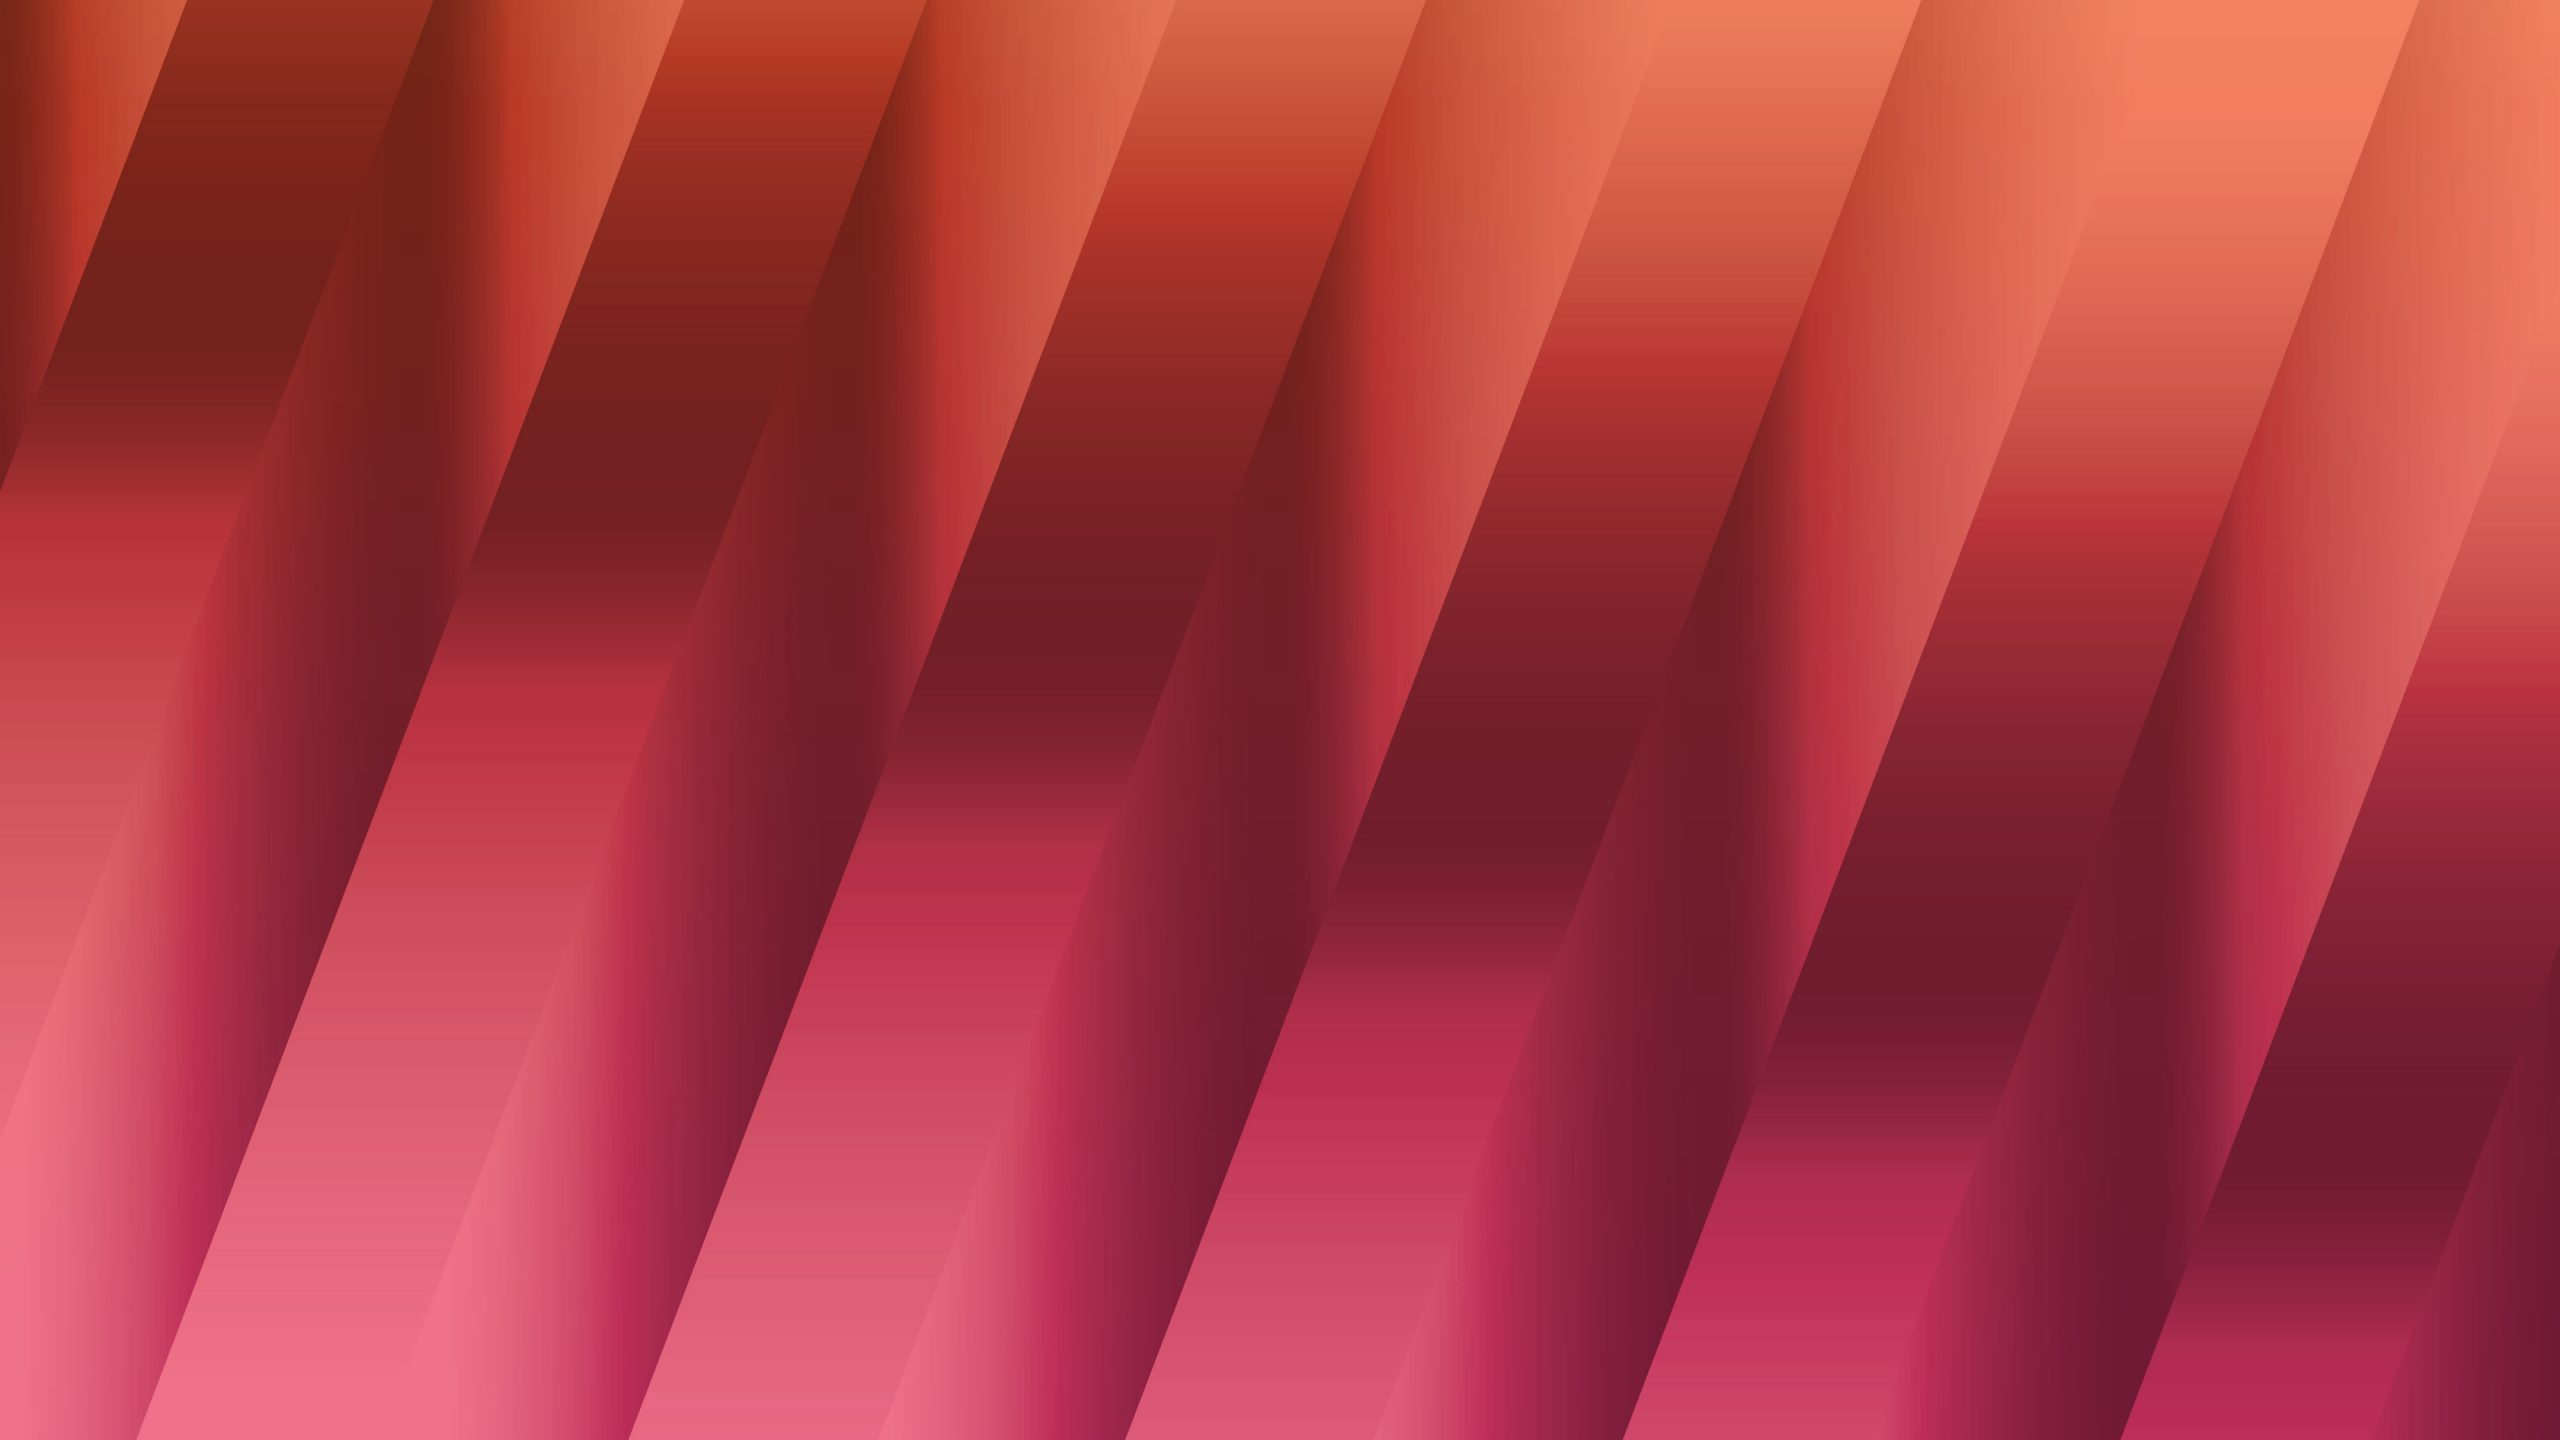 pinkish-abstract-background-wallpaper